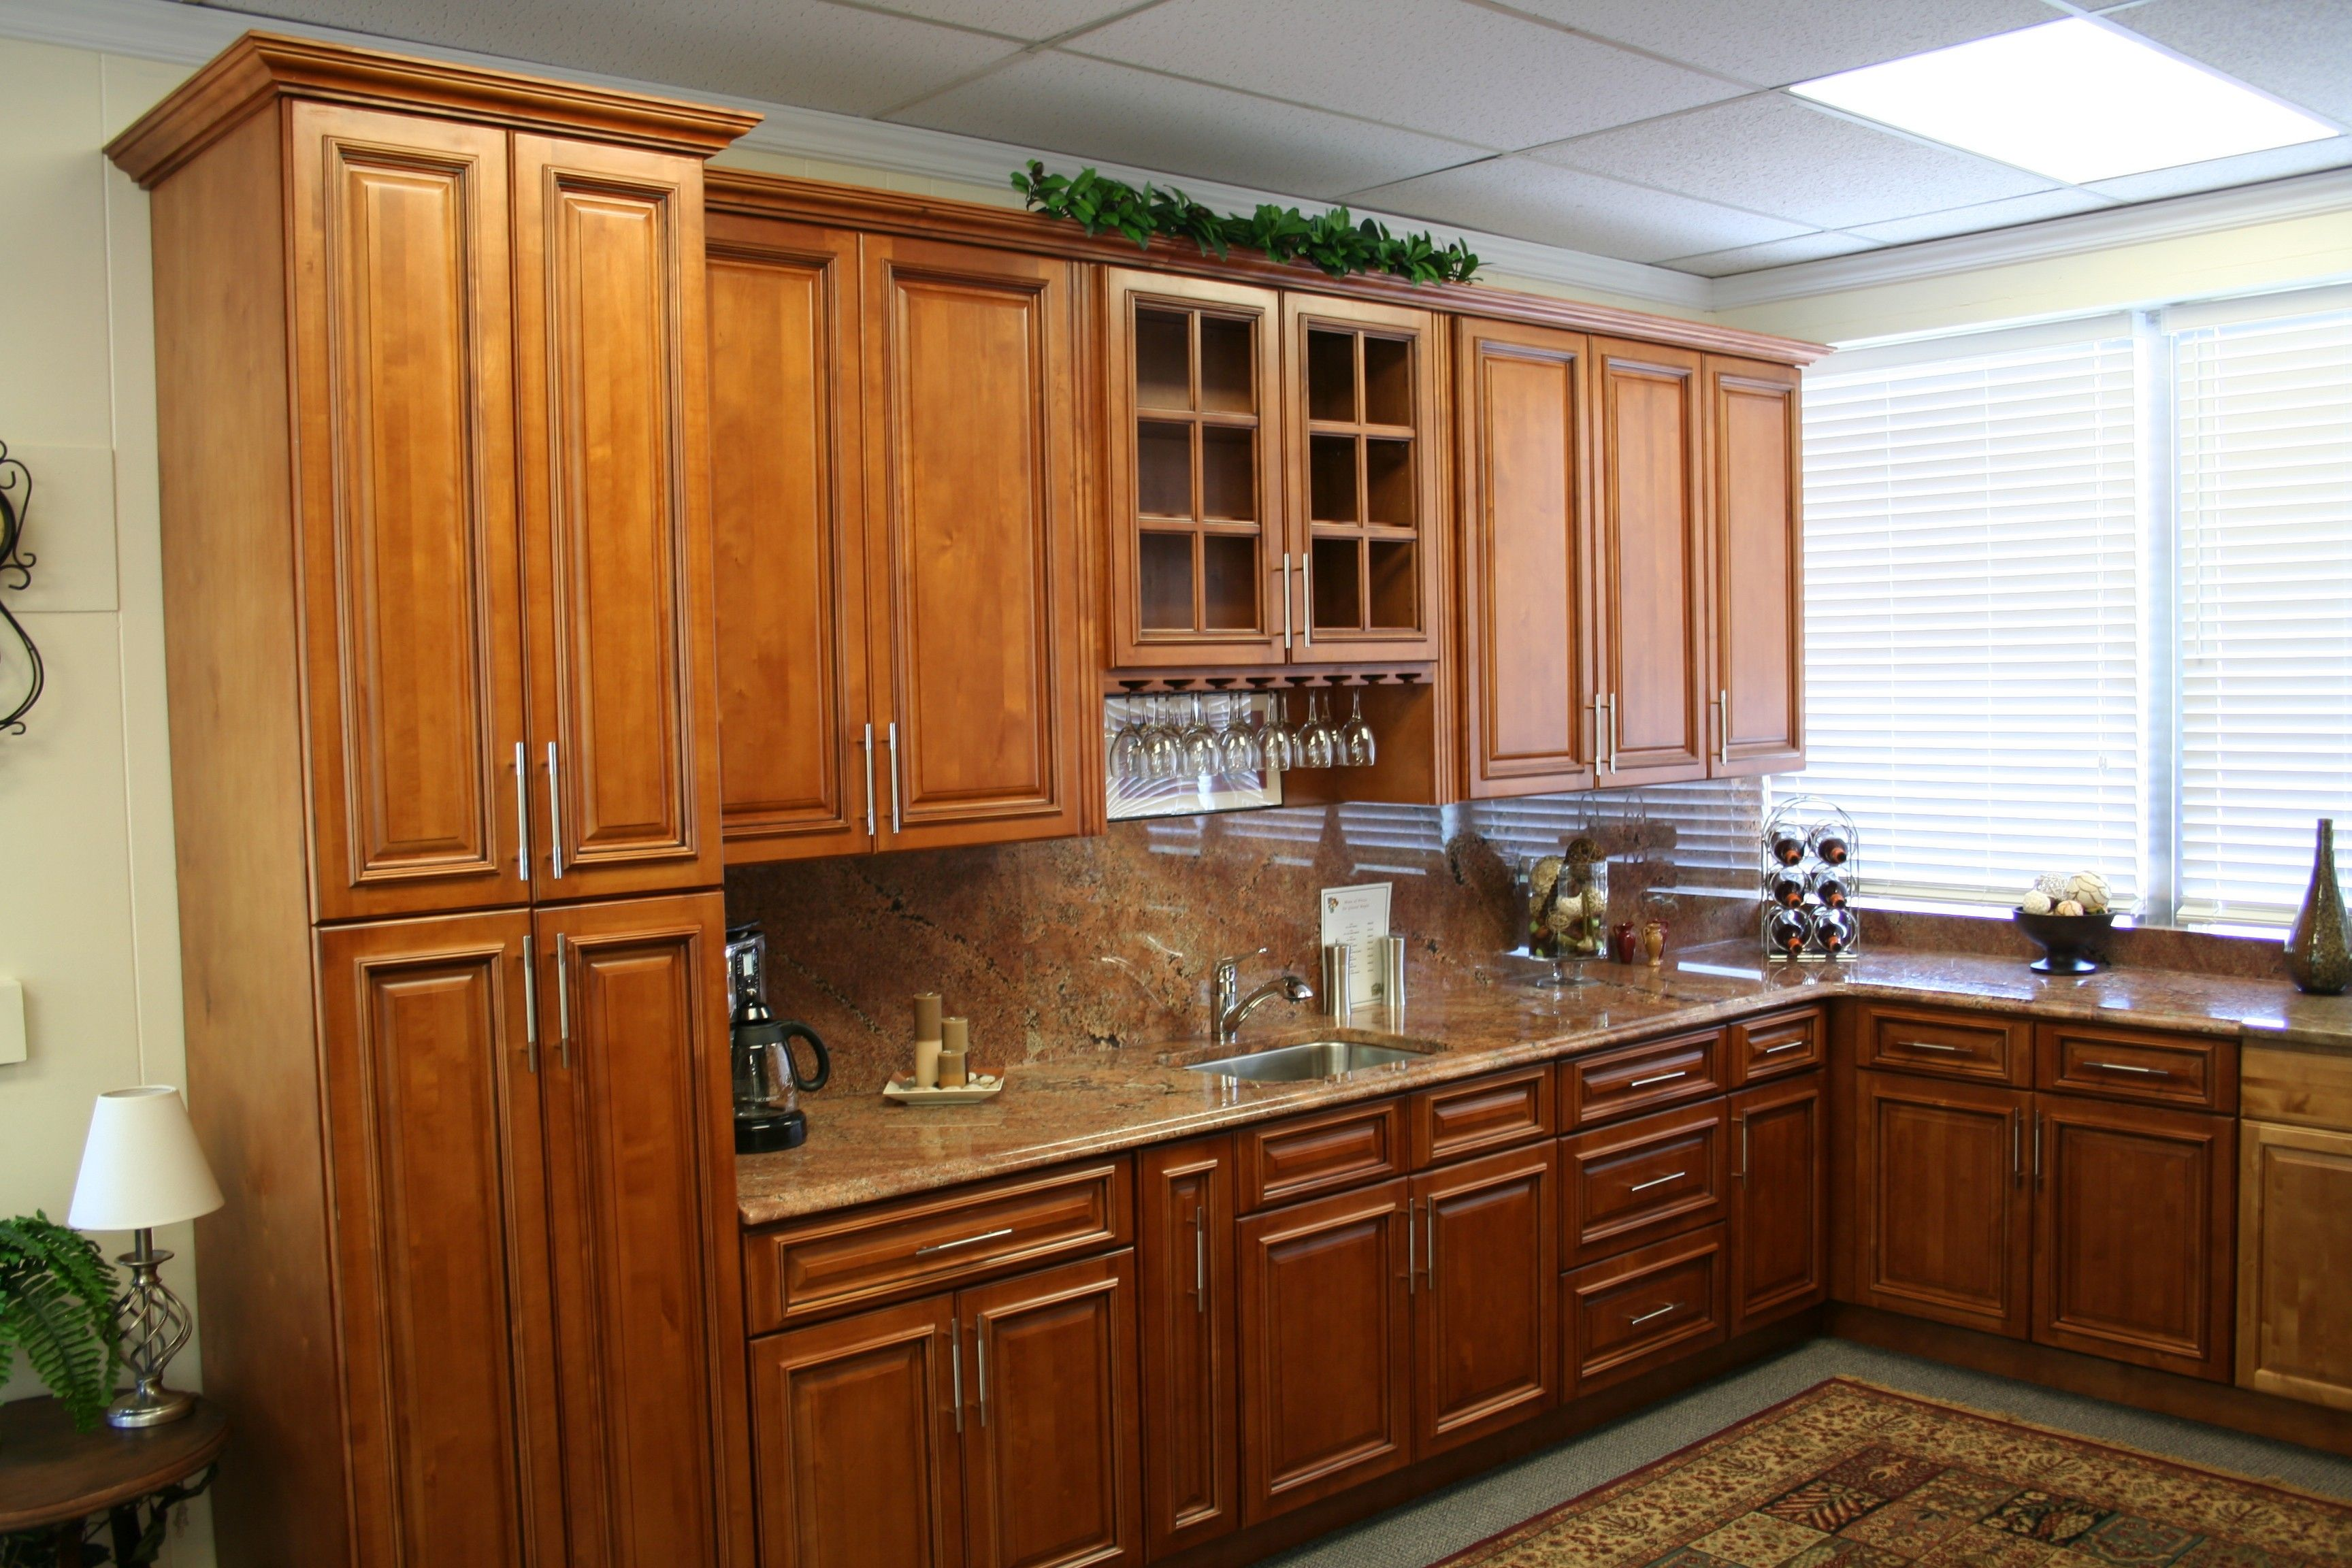 Image result for maple cabinets silver appliances | Maple ...